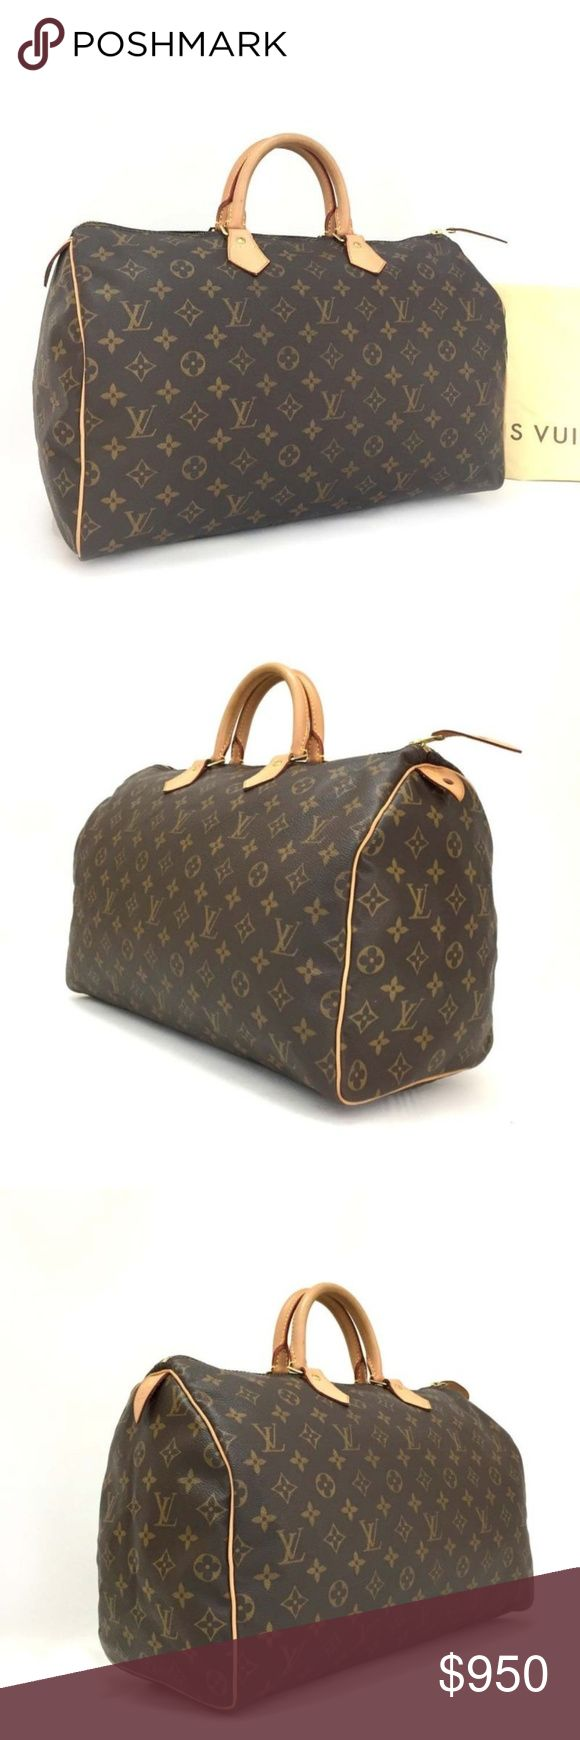 Louis Vuitton speedy 40 Authentic Louis Vuitton speedy 40 In very good condition. Clean inside and out. Check thorough picture. Comes with dustbag, cards and keylock. Date code: AA2089 Accept SQ or Circle for less 750 No trade allowed. Louis Vuitton Bags Satchels